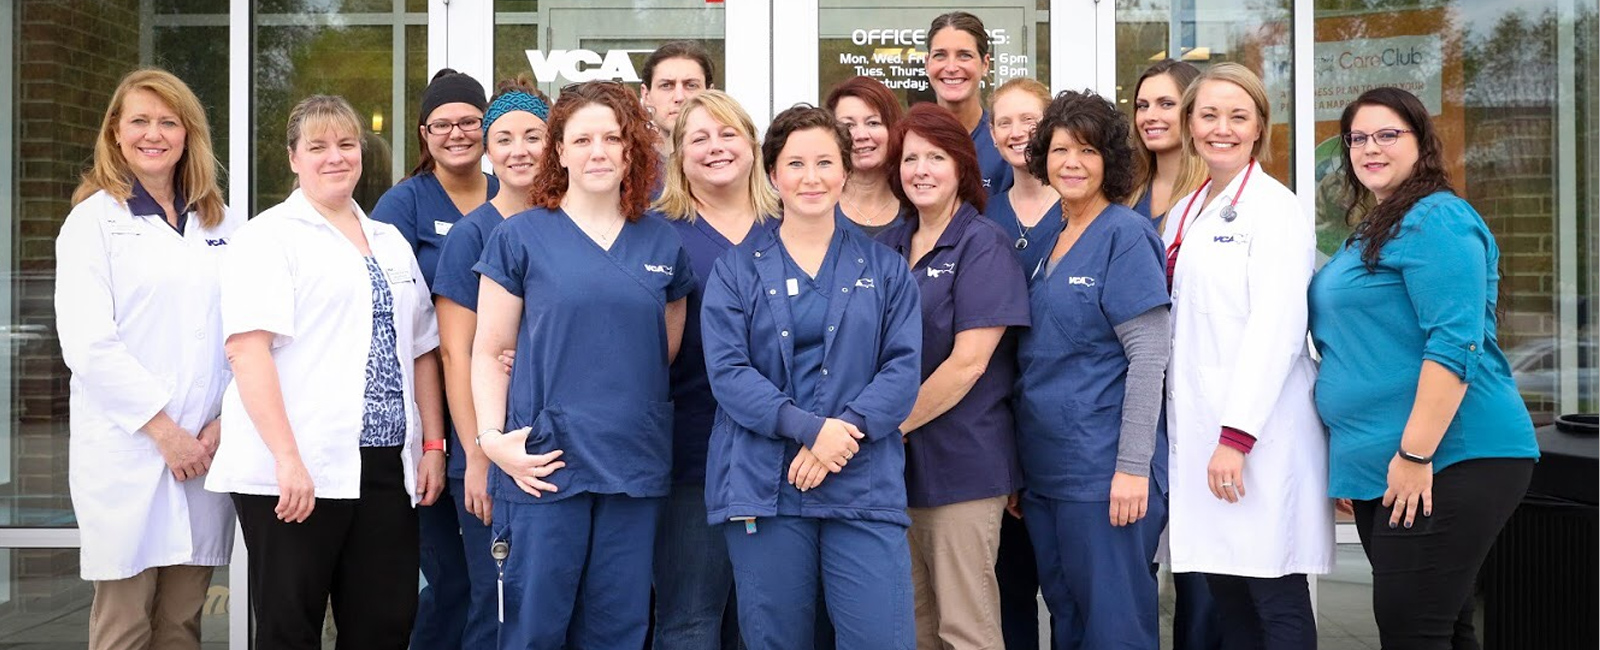 Team Picture of VCA Woodland Animal Hospital